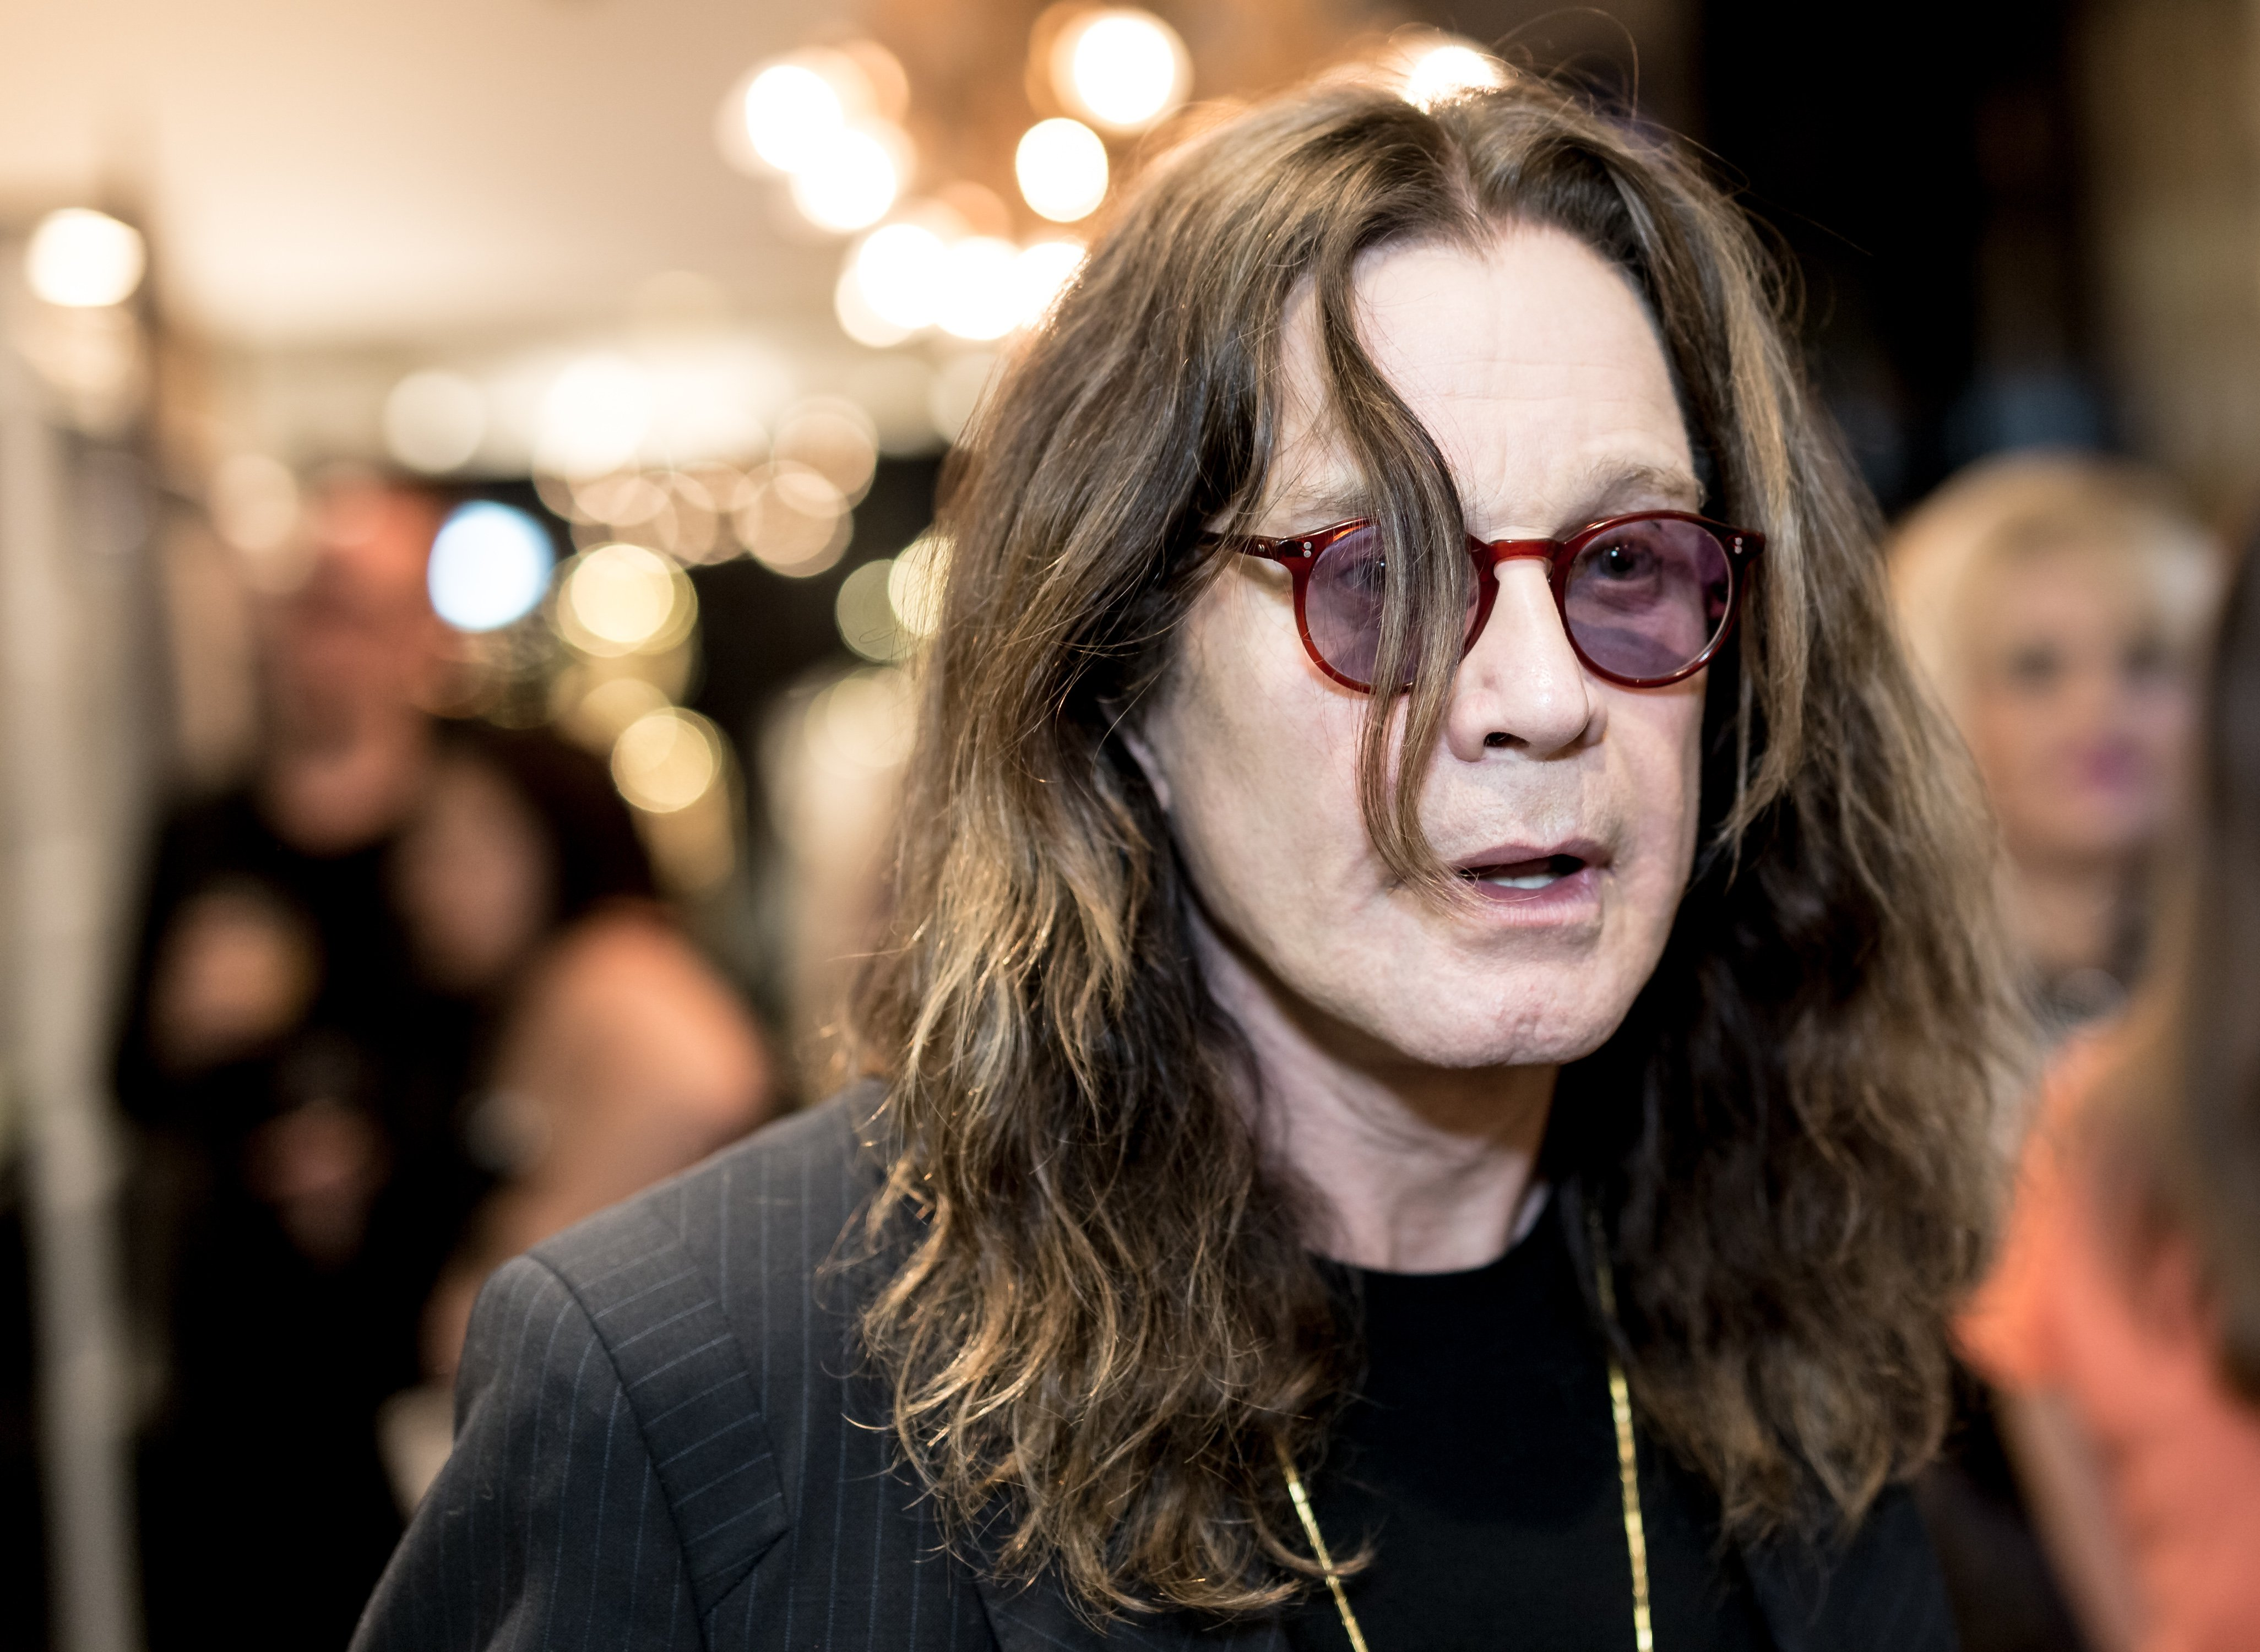 Ozzy Osbourne on September 28, 2017 in Los Angeles, California | Source: Getty Images/Global Images Ukraine